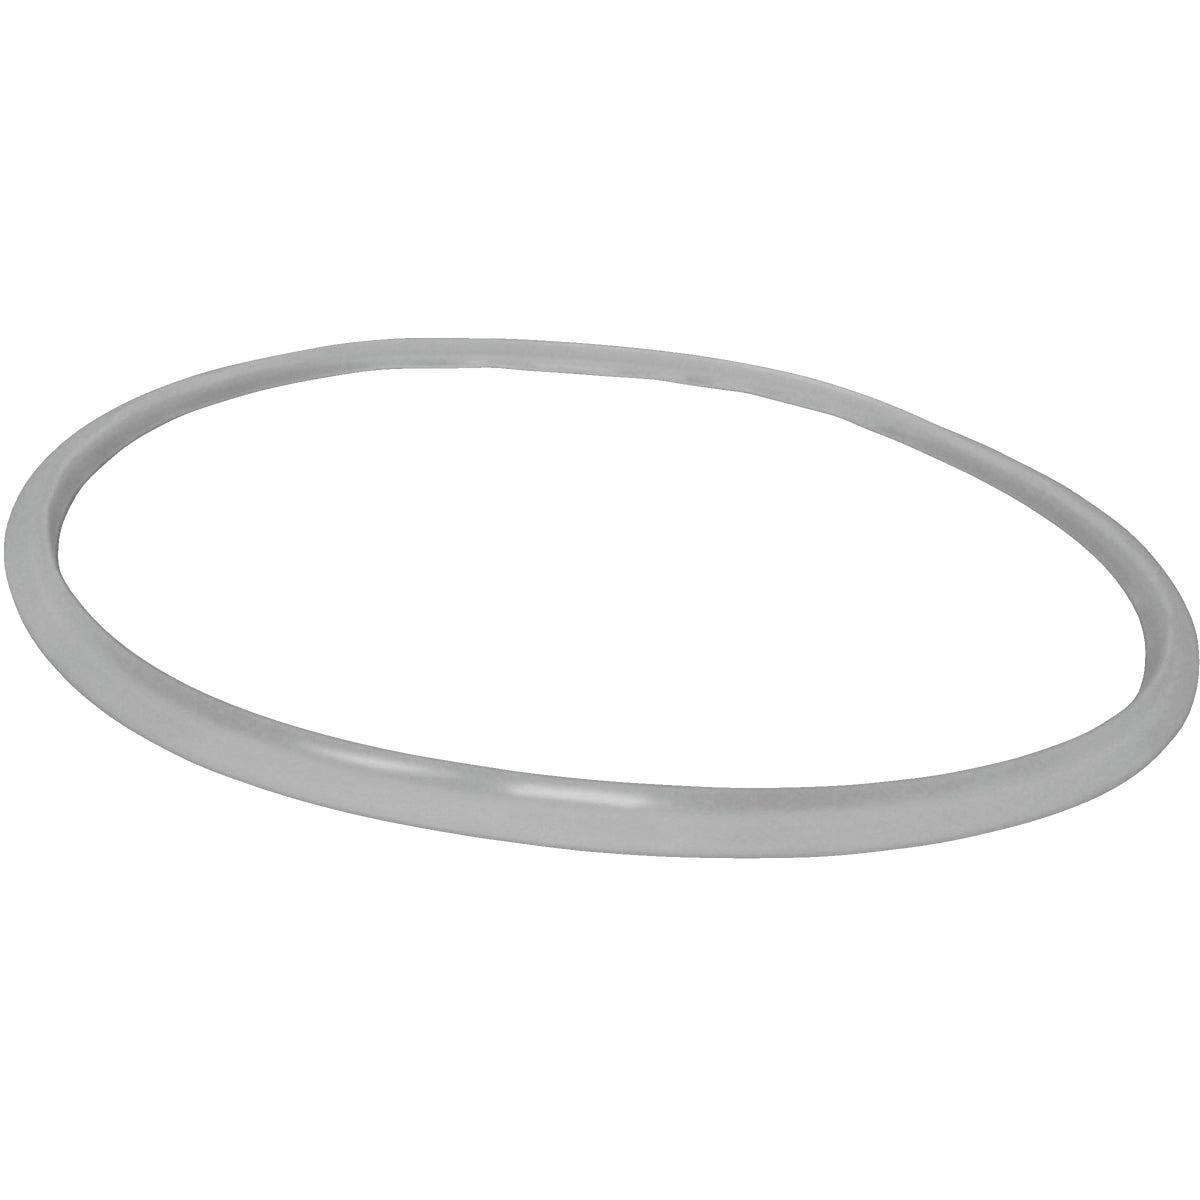 4.2QT REPLACEMENT GASKET - 92504 by T Fal Wearever